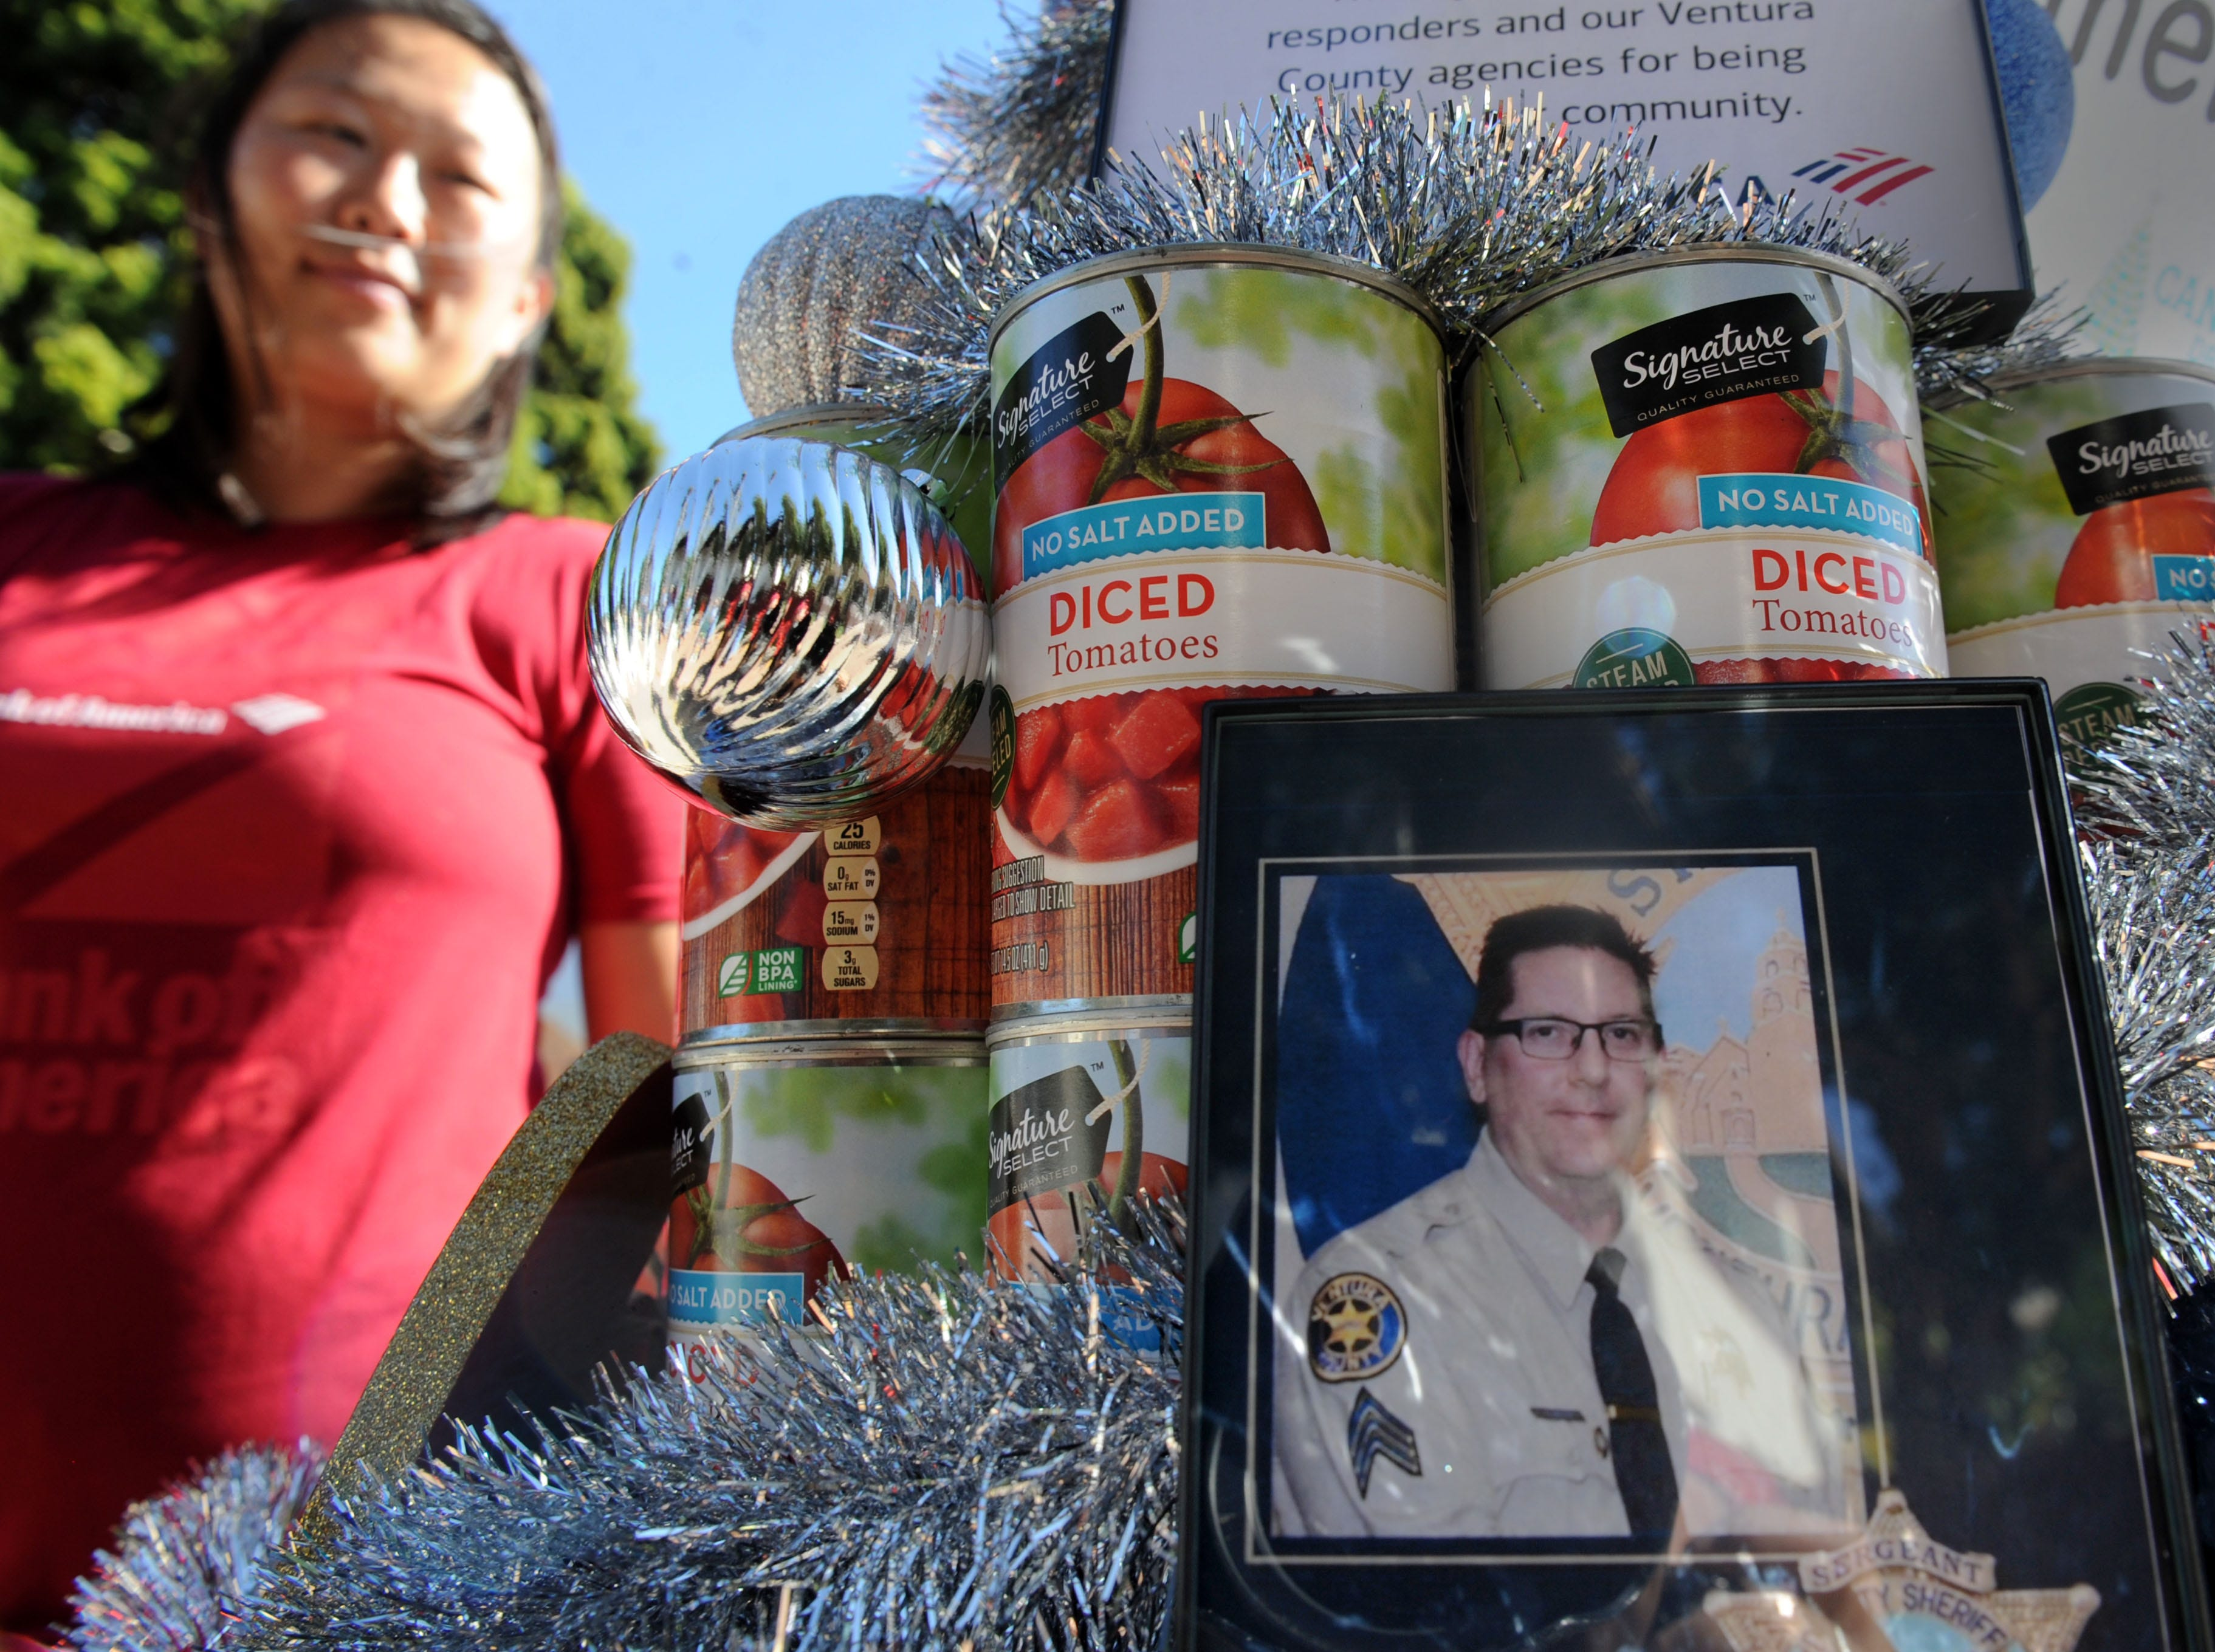 Michelle Yee, senior vice president and Ventura/Santa Barbara market manager at Bank of America, pays tribute to Ventura County sheriff's Sgt. Ron Helus, who was killed at the Borderline Bar & Grill in Thousand Oaks, by putting his photos around her can tree at FOOD Share's annual CAN-tree food drive in downtown Ventura at Figueroa Plaza.